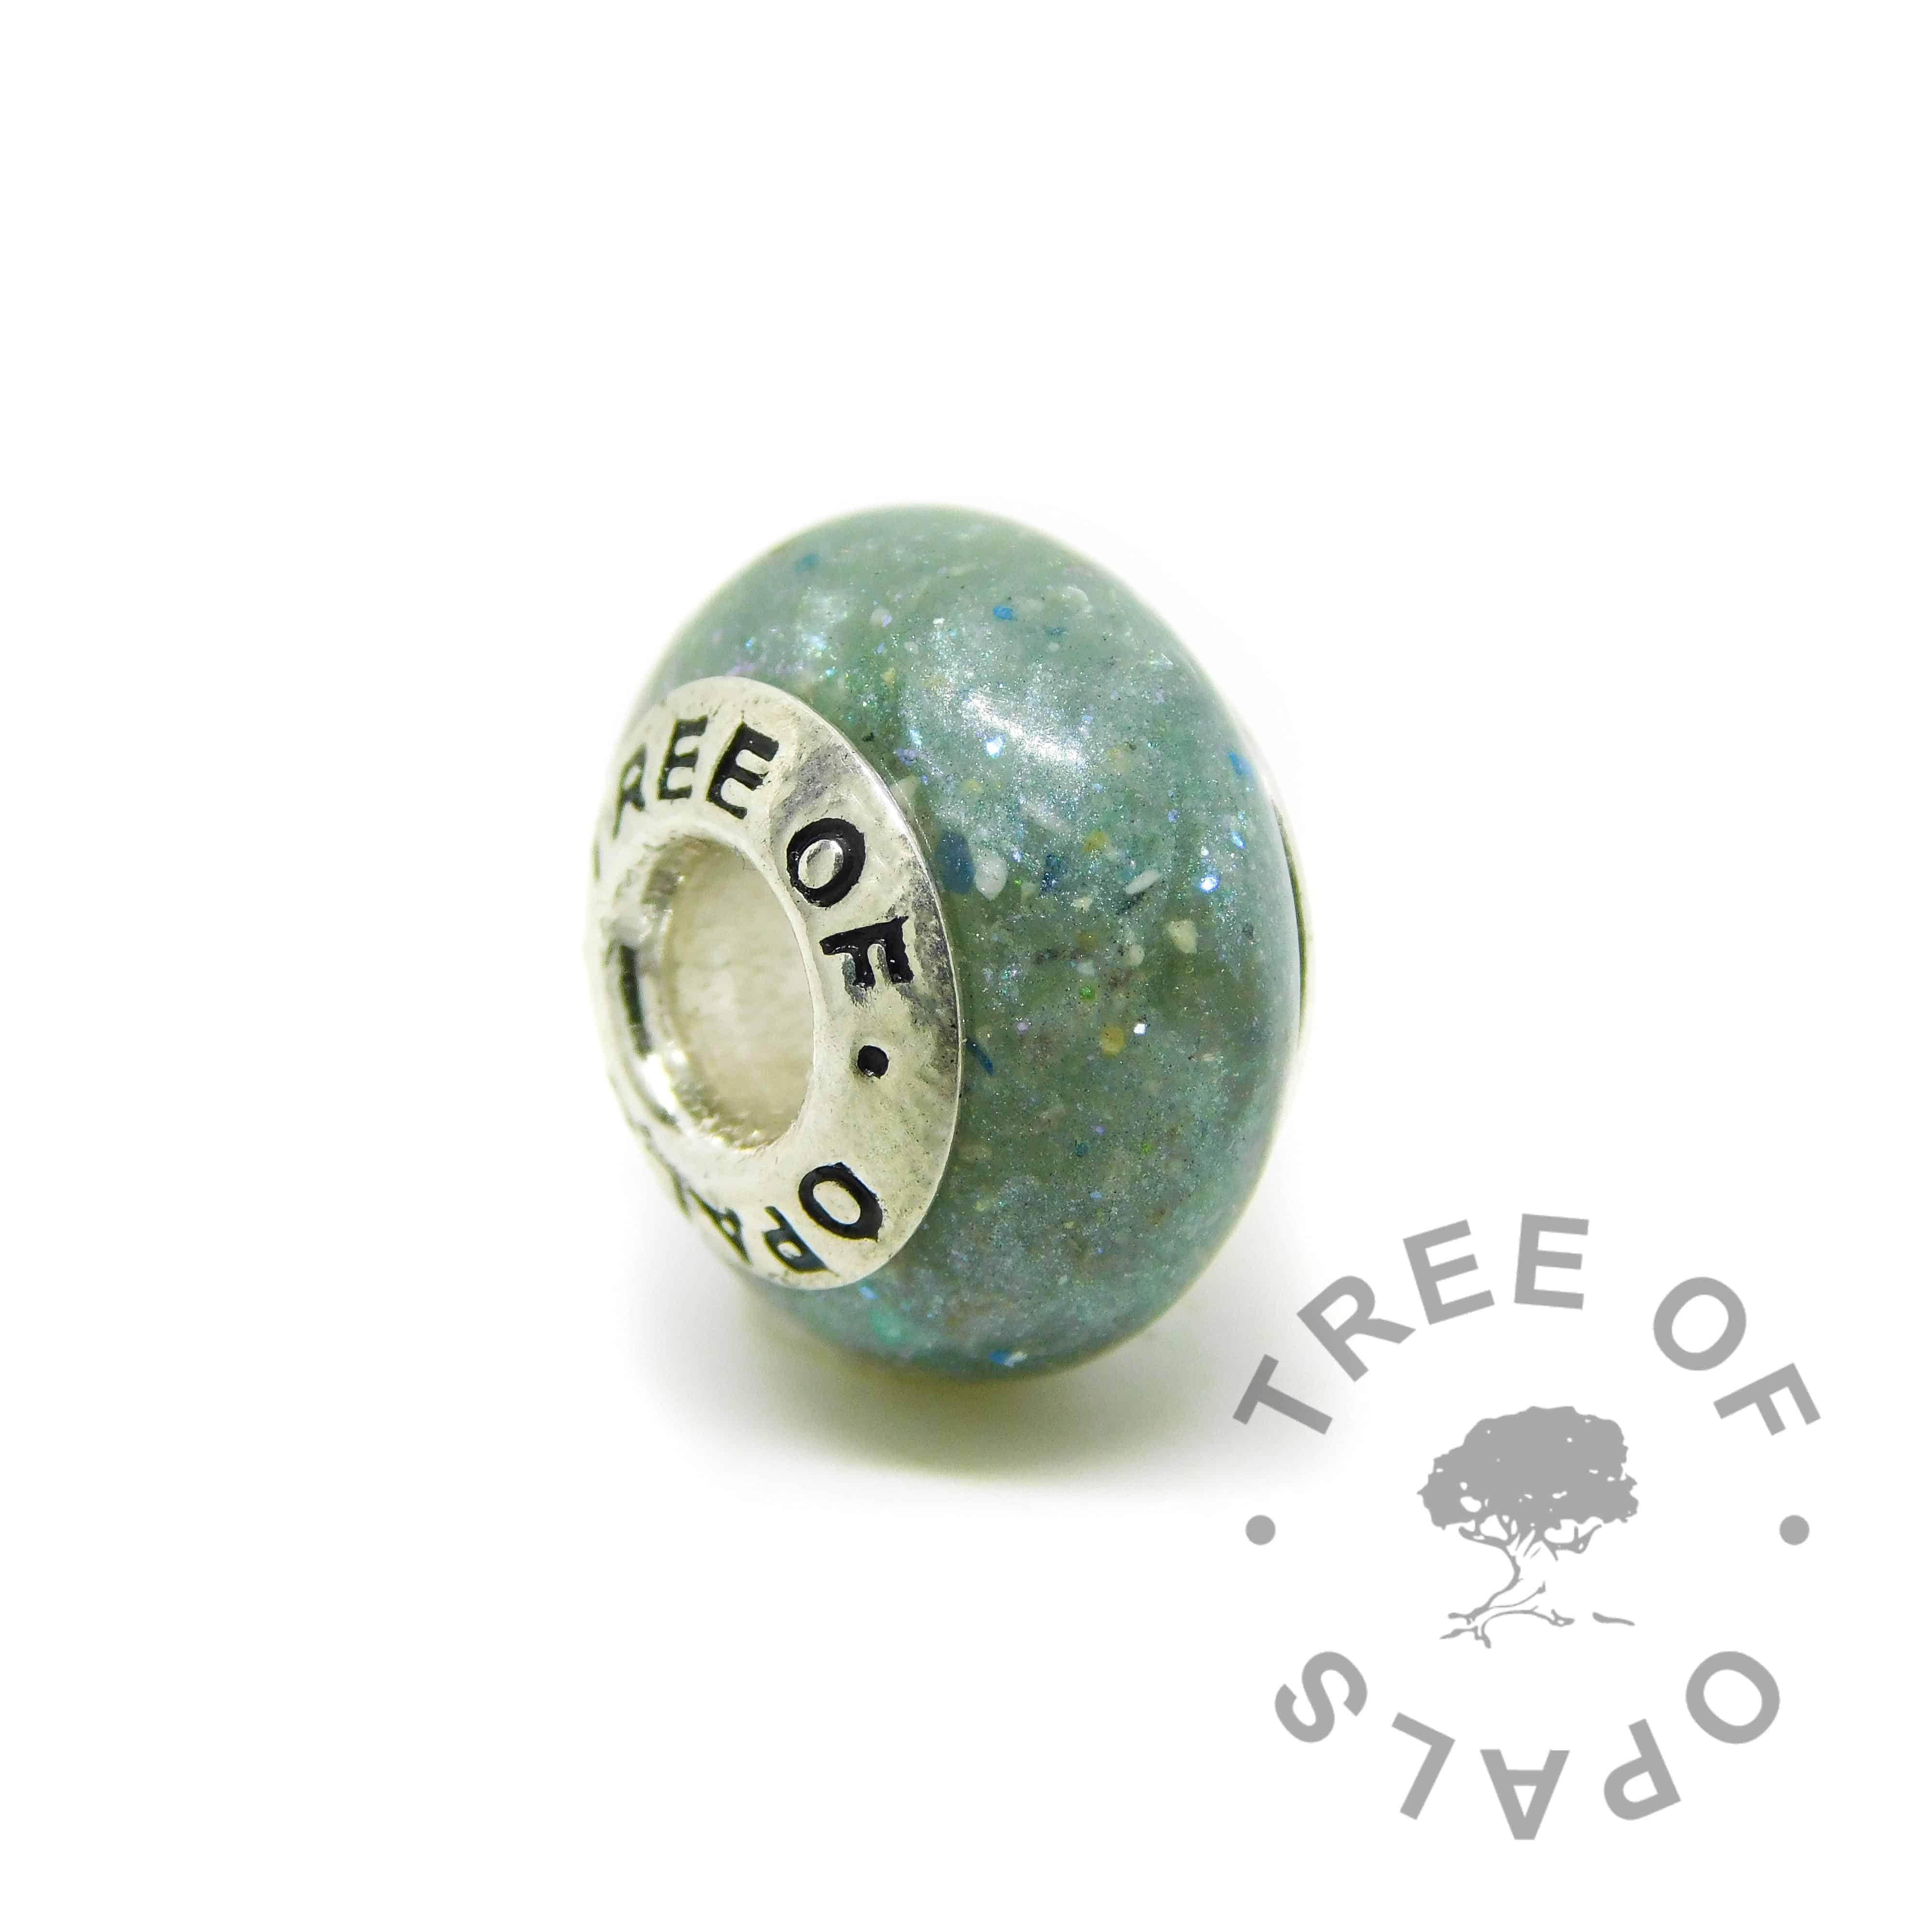 Cremation ash charm. Cremation ashes with mermaid teal resin sparkle mix,no birthstone. Set with solid sterling silver Tree of Opals core for Chamilia and Pandora bracelets. Watermarked copyright image by Tree of Opals